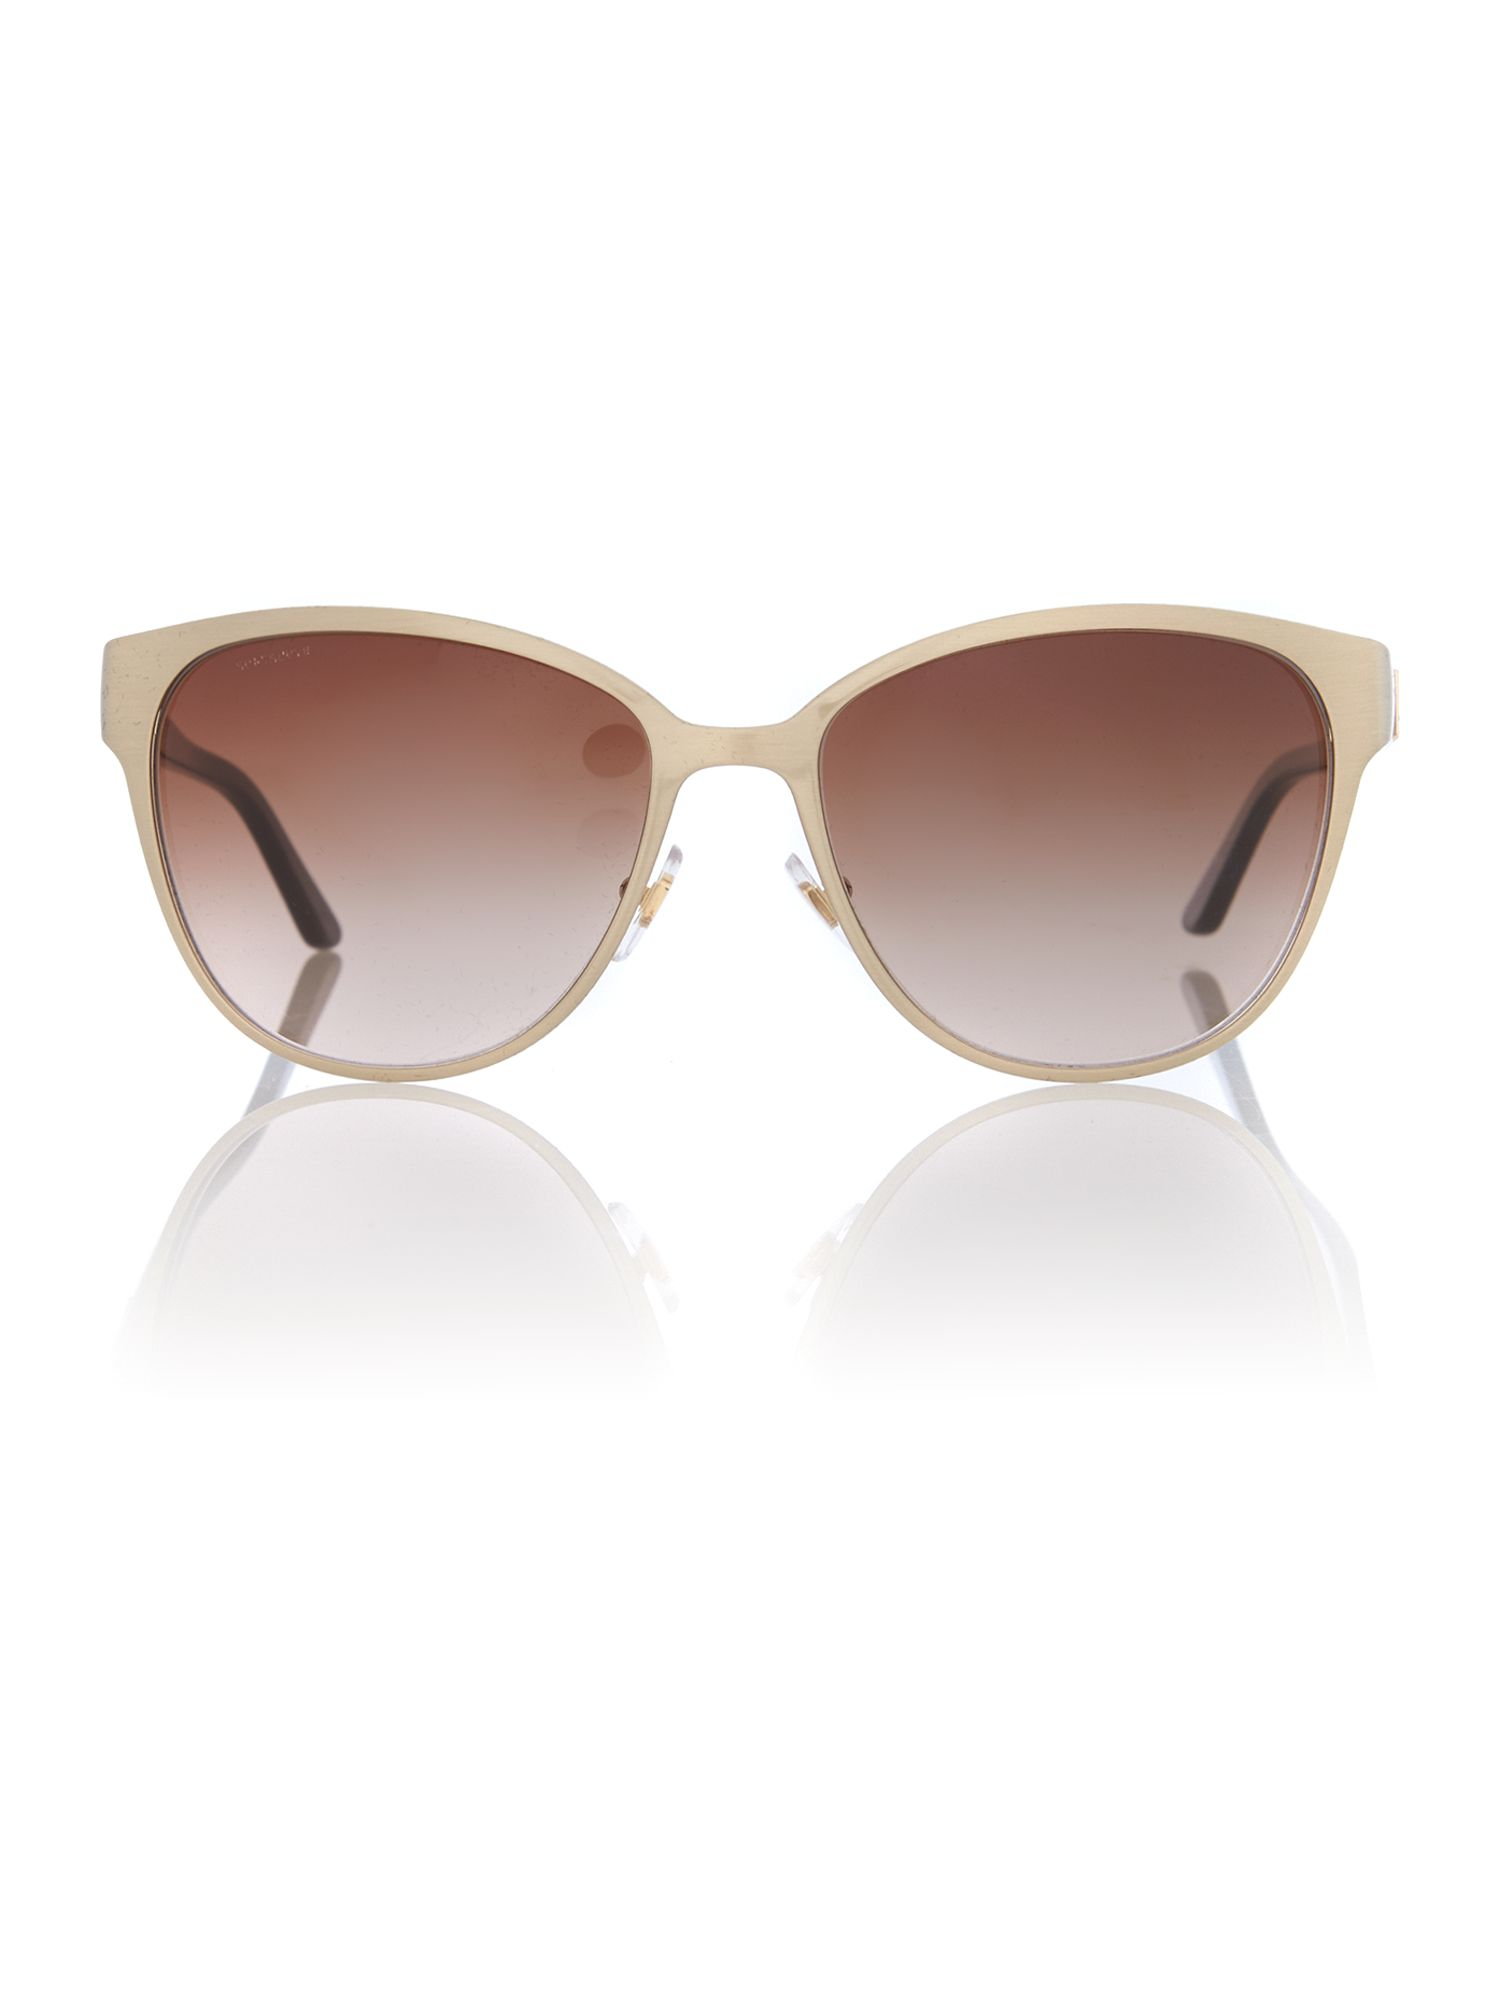 Women brown gradient squared sunglasses